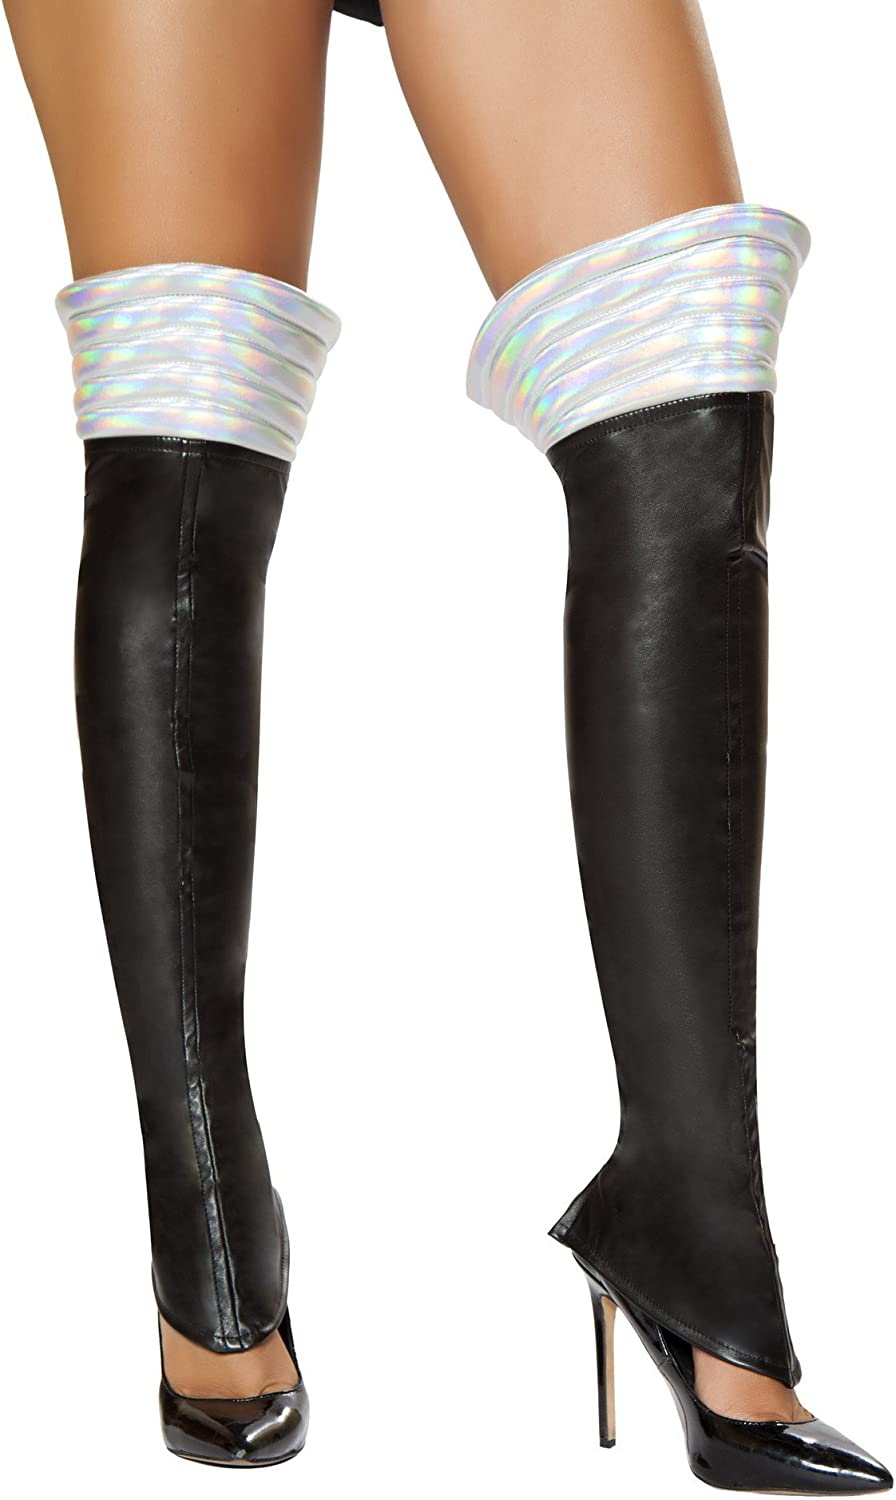 RMLW4738 Max 44% OFF - Black Fresno Mall Space Costume Leggings Girl Accessory